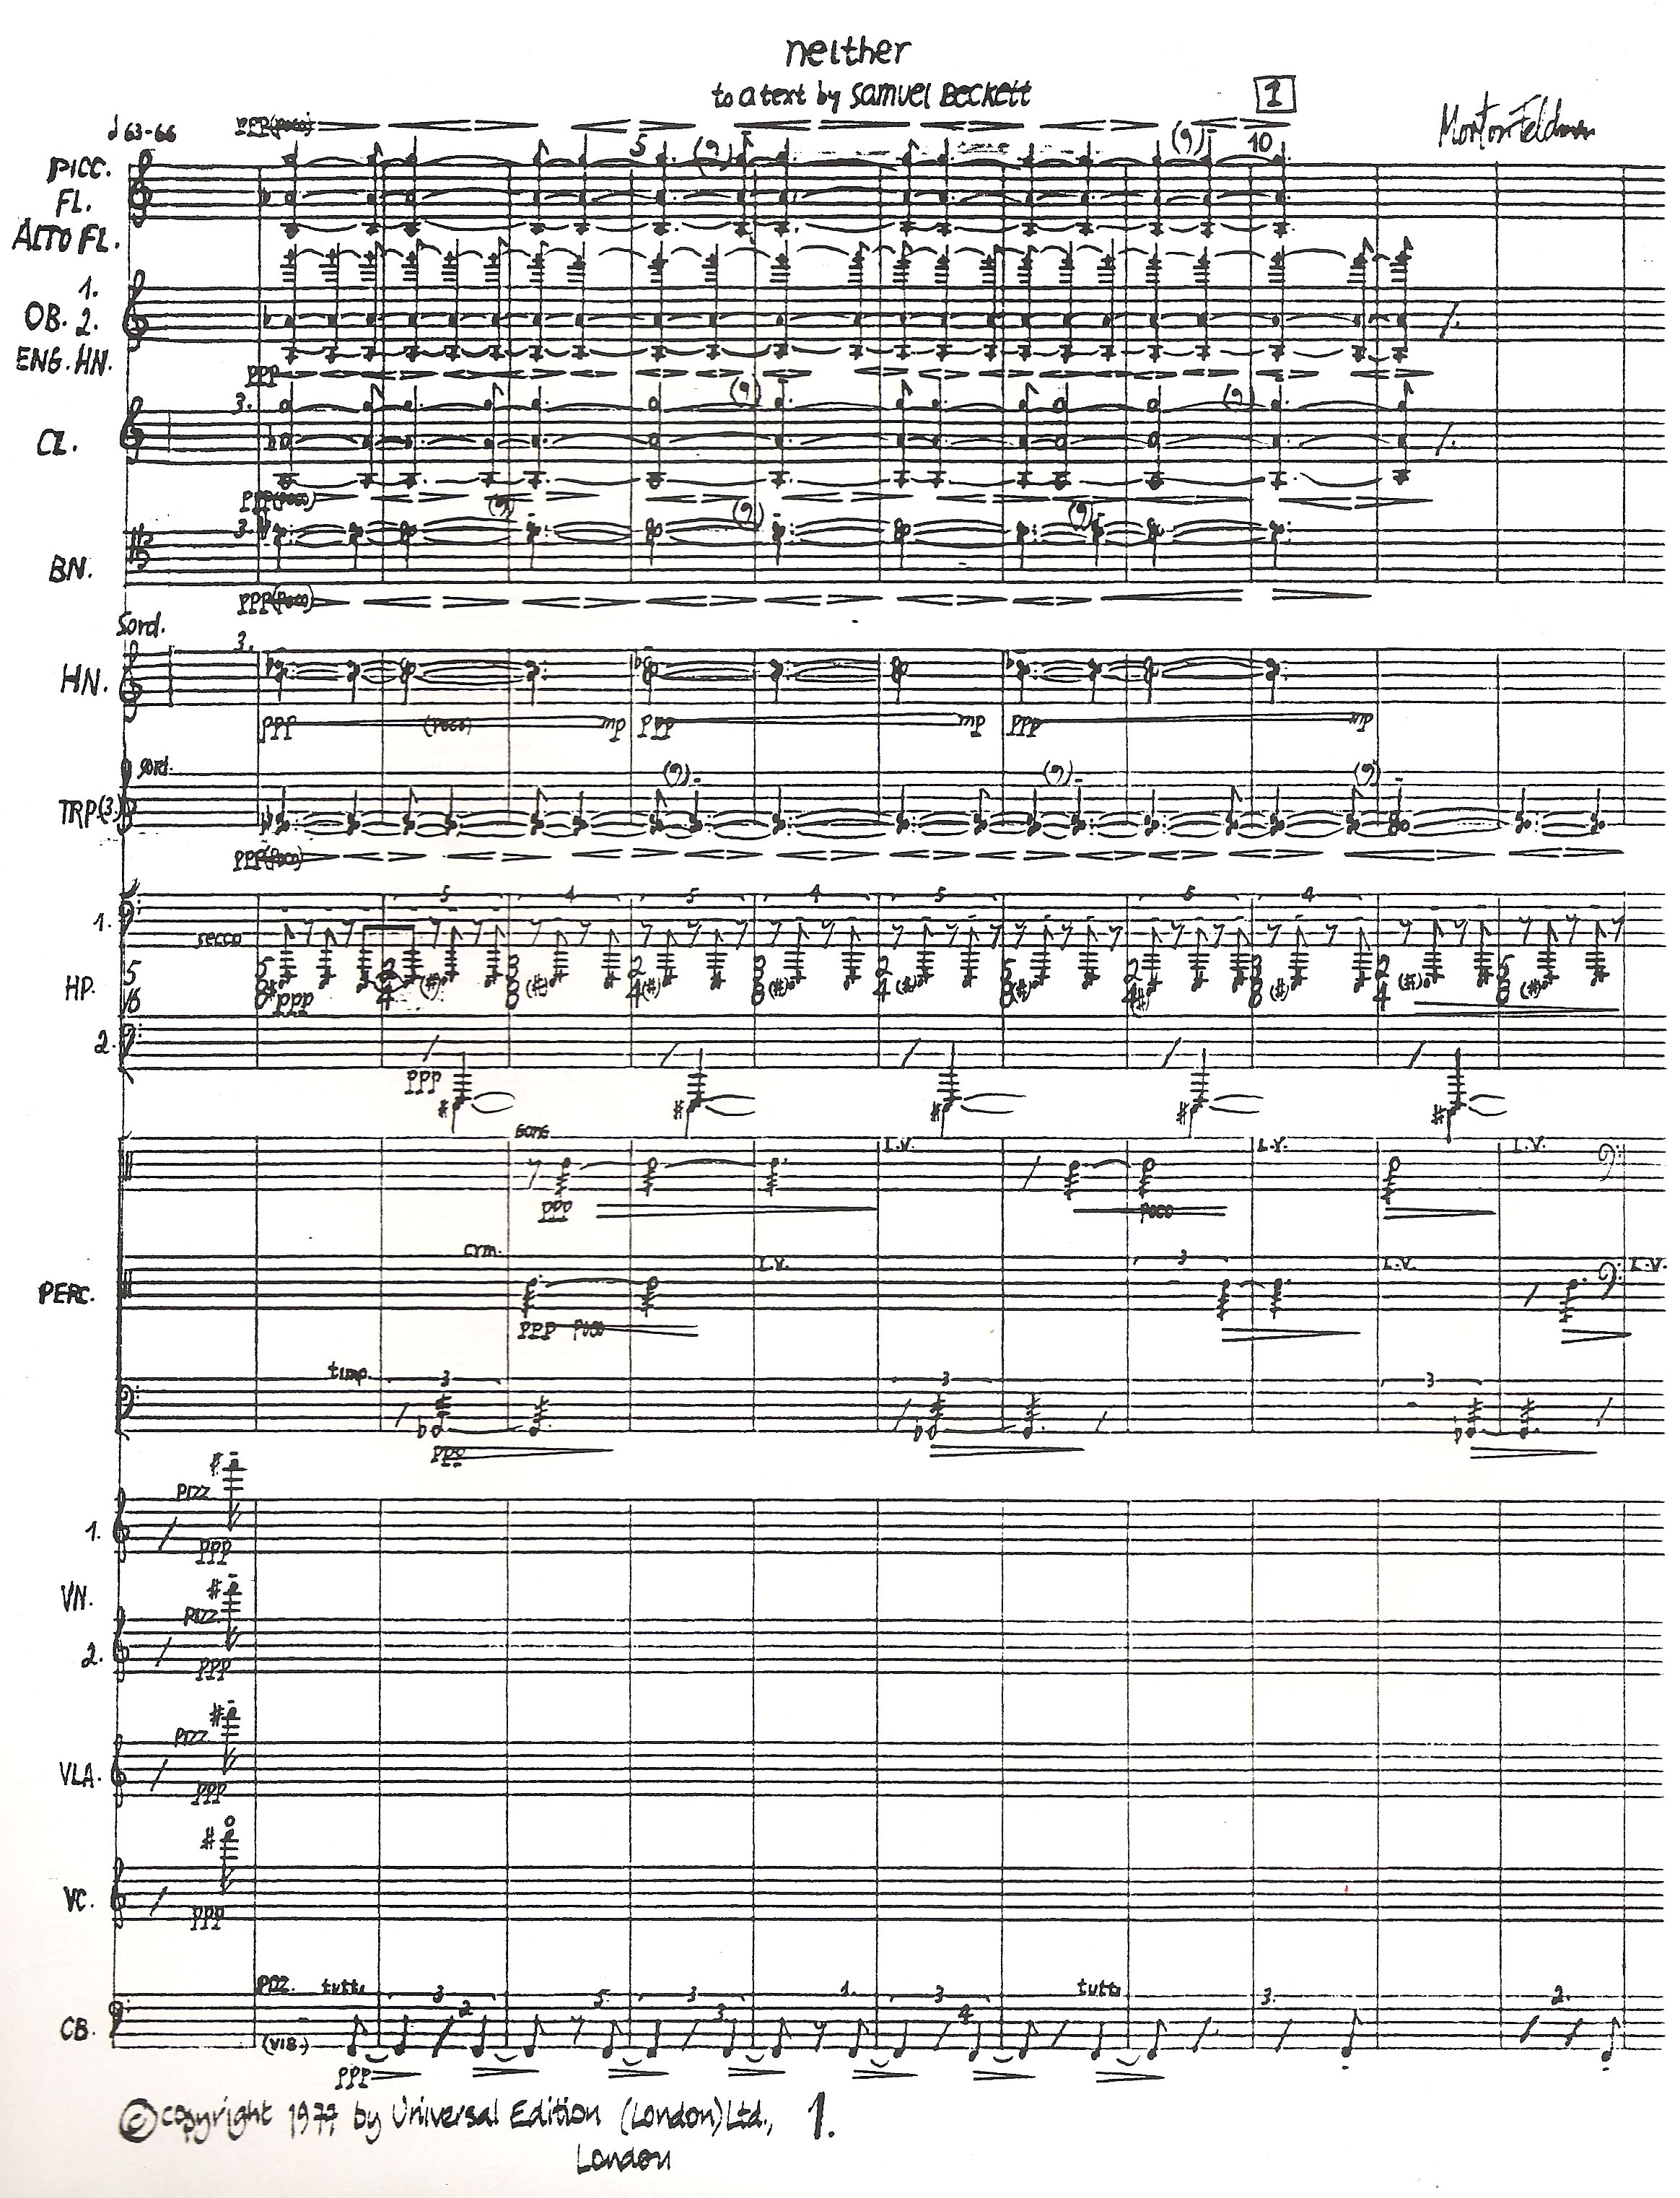 Score of Neither Page 1